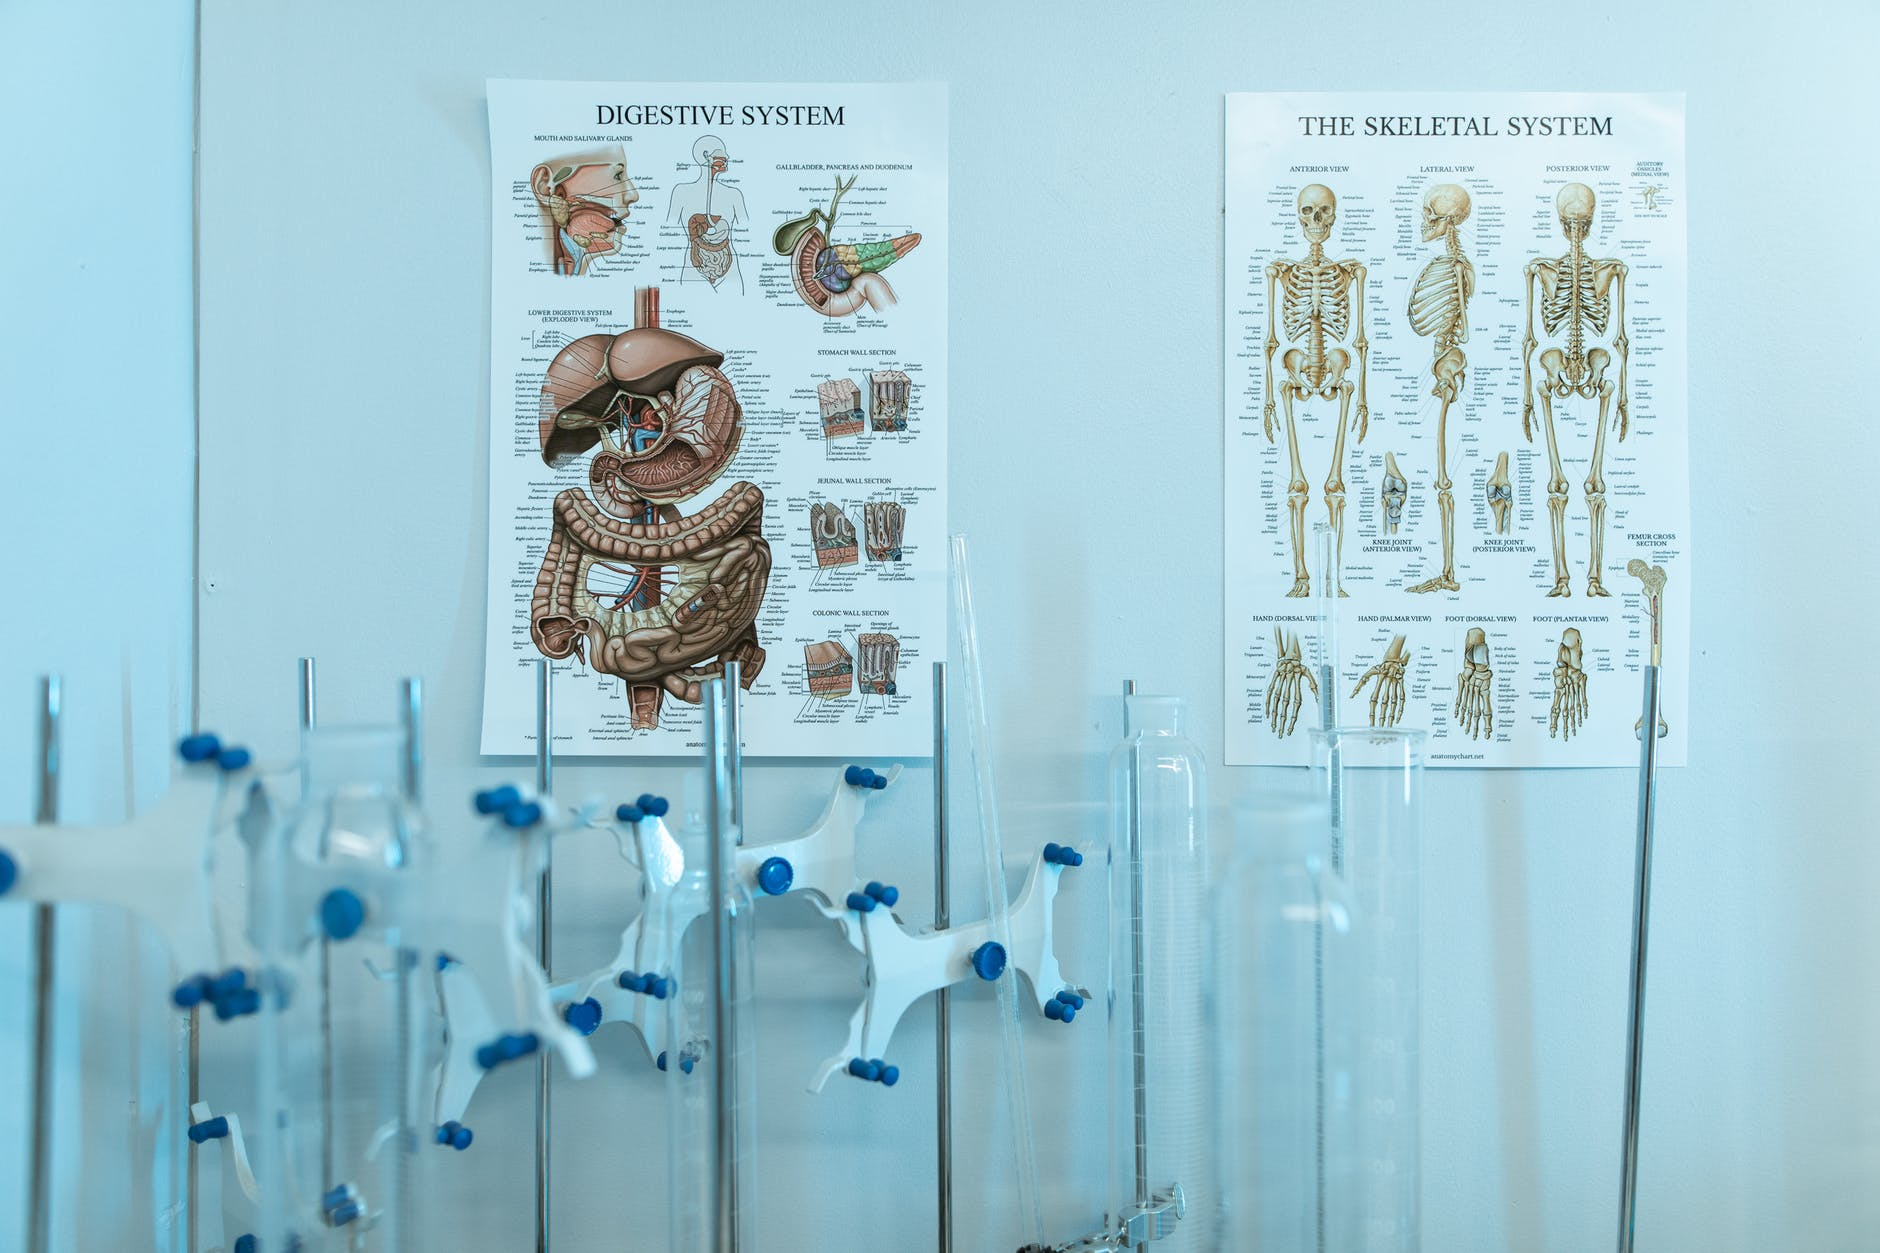 Stock picture of a room for doctors and/or nurses that has two posters on the wall. One poster is the skeletal system and the other is the digestive system